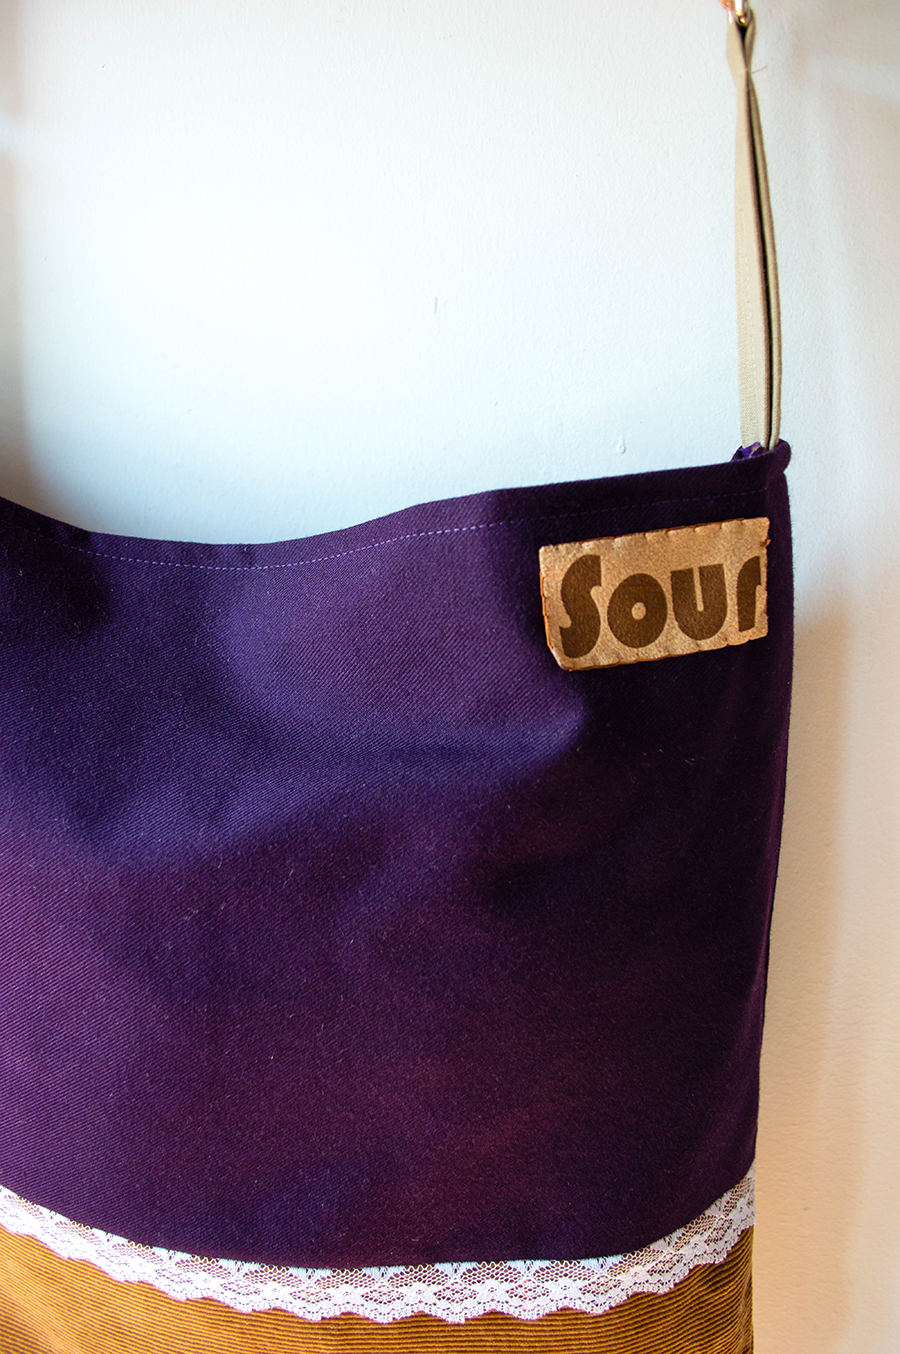 Love me a good local brand: Sour Bags and Totes is original, durable, and ultra-adorbs!